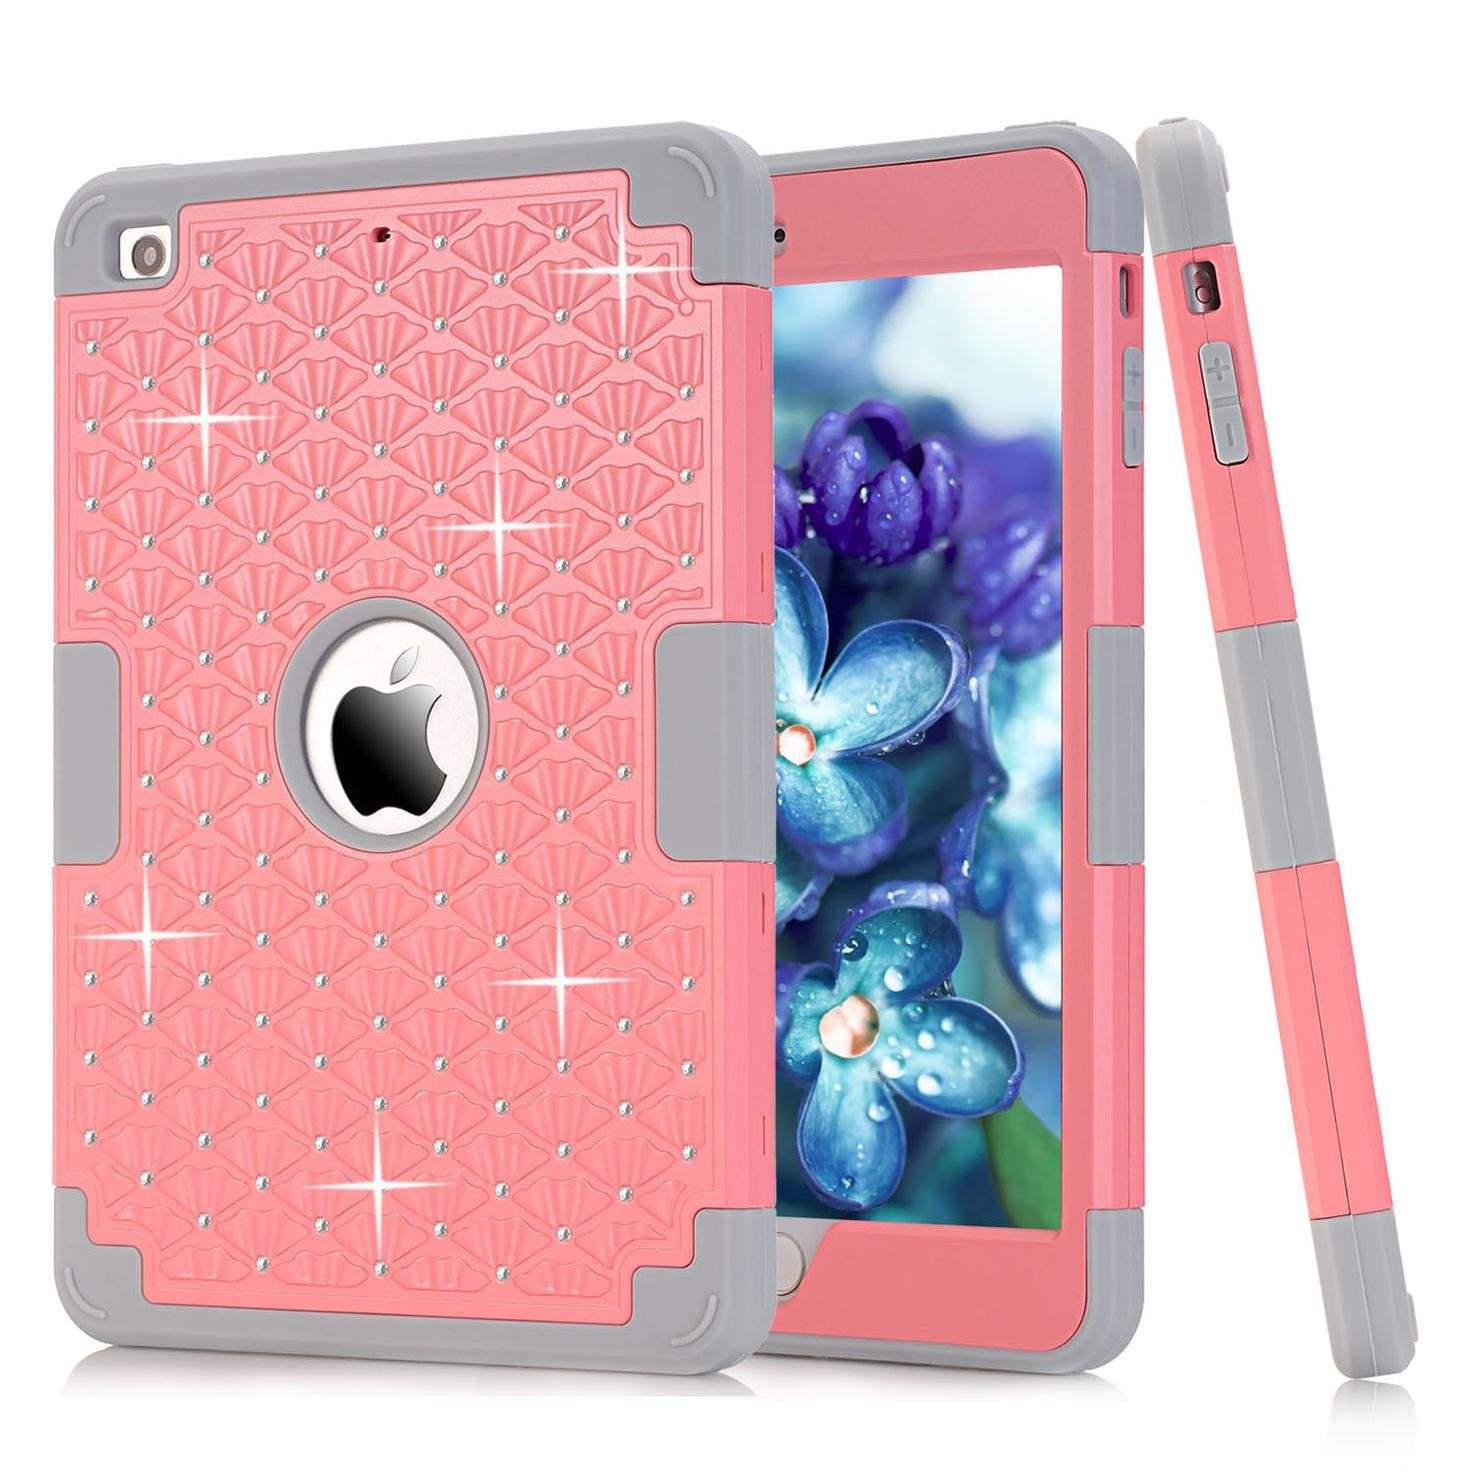 iPad mini 1/2/3 Case, Firefish [Bling Crystal Diamond] Hybrid Heavy Duty Shockproof Protective Cover Hard Back & Soft Silicone Bumper Dual Layer Case for Apple iPad Mini 1/2/3 -Pink+Gray